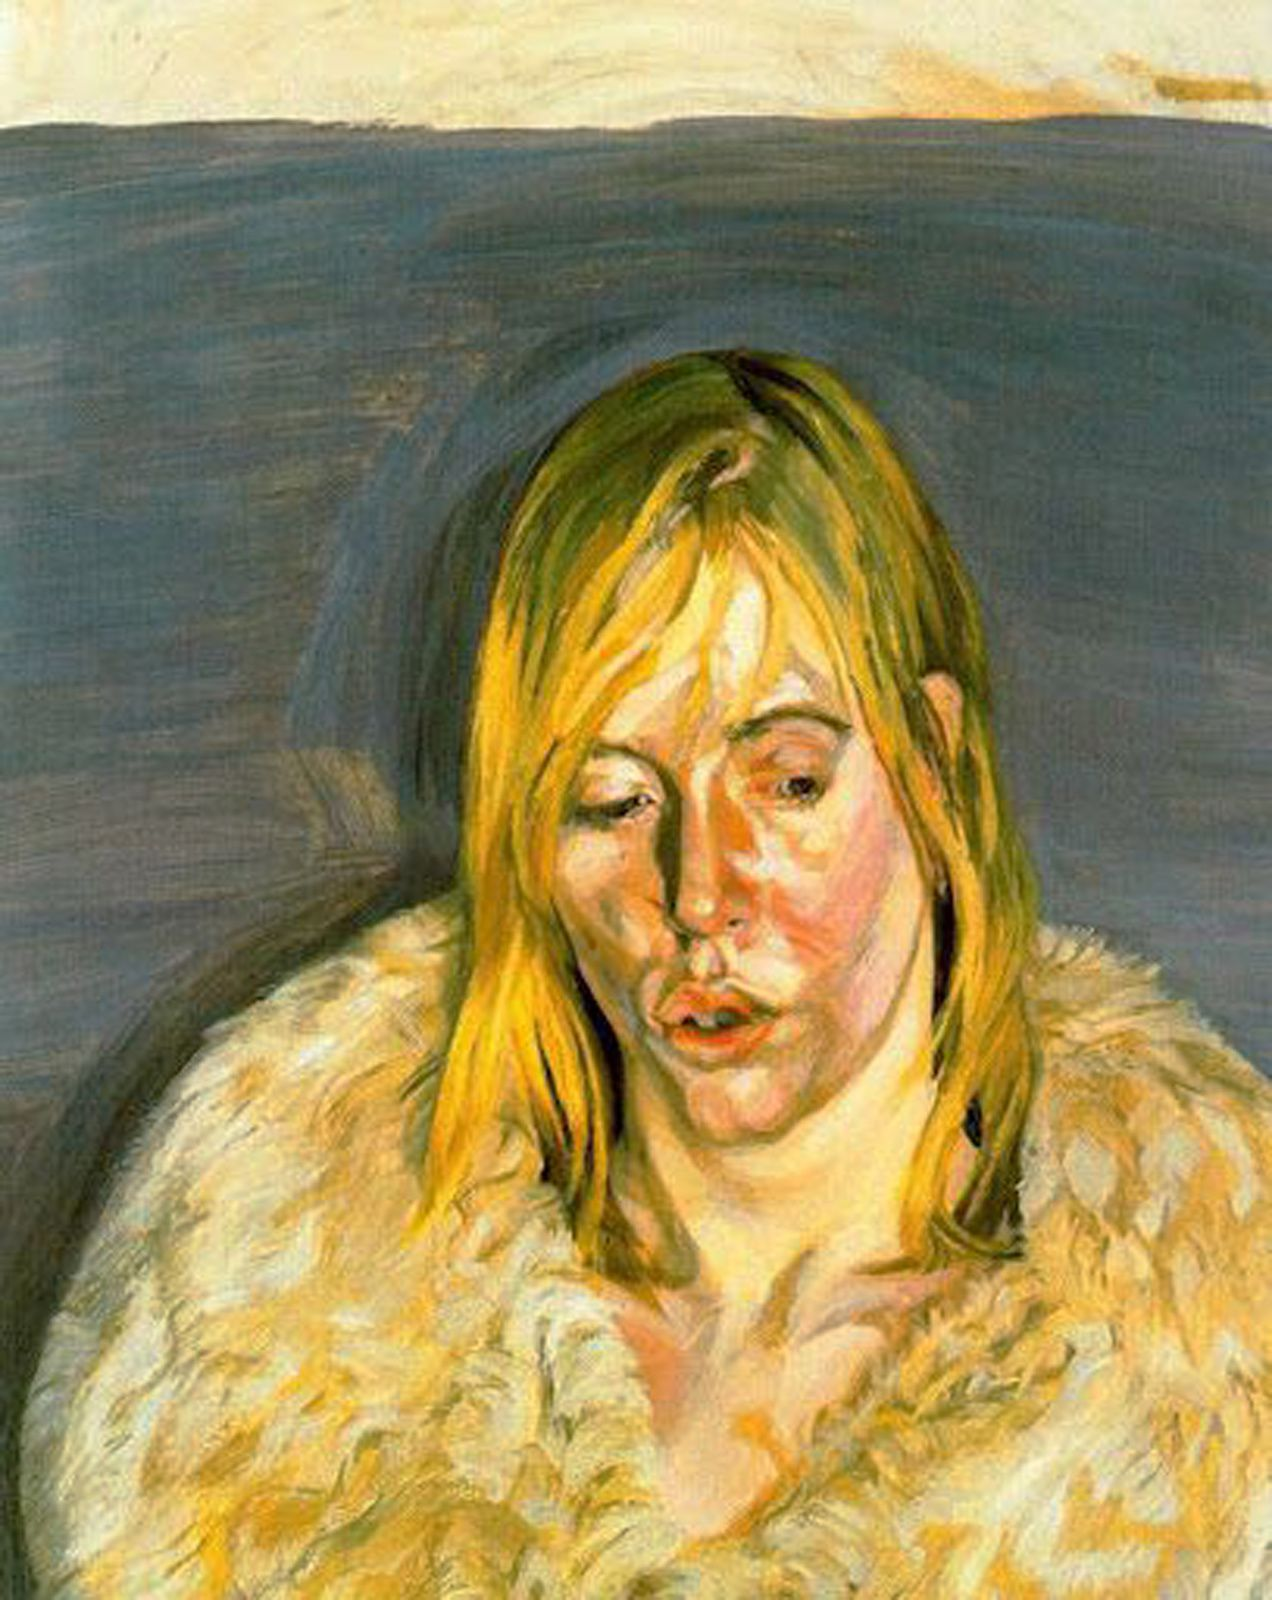 """Fille au mlanteau de fourrure"", 1967 de Lucian Freud - Courtesy Collection Alicia KOPLOWITZ - Grupo Omega Capital"